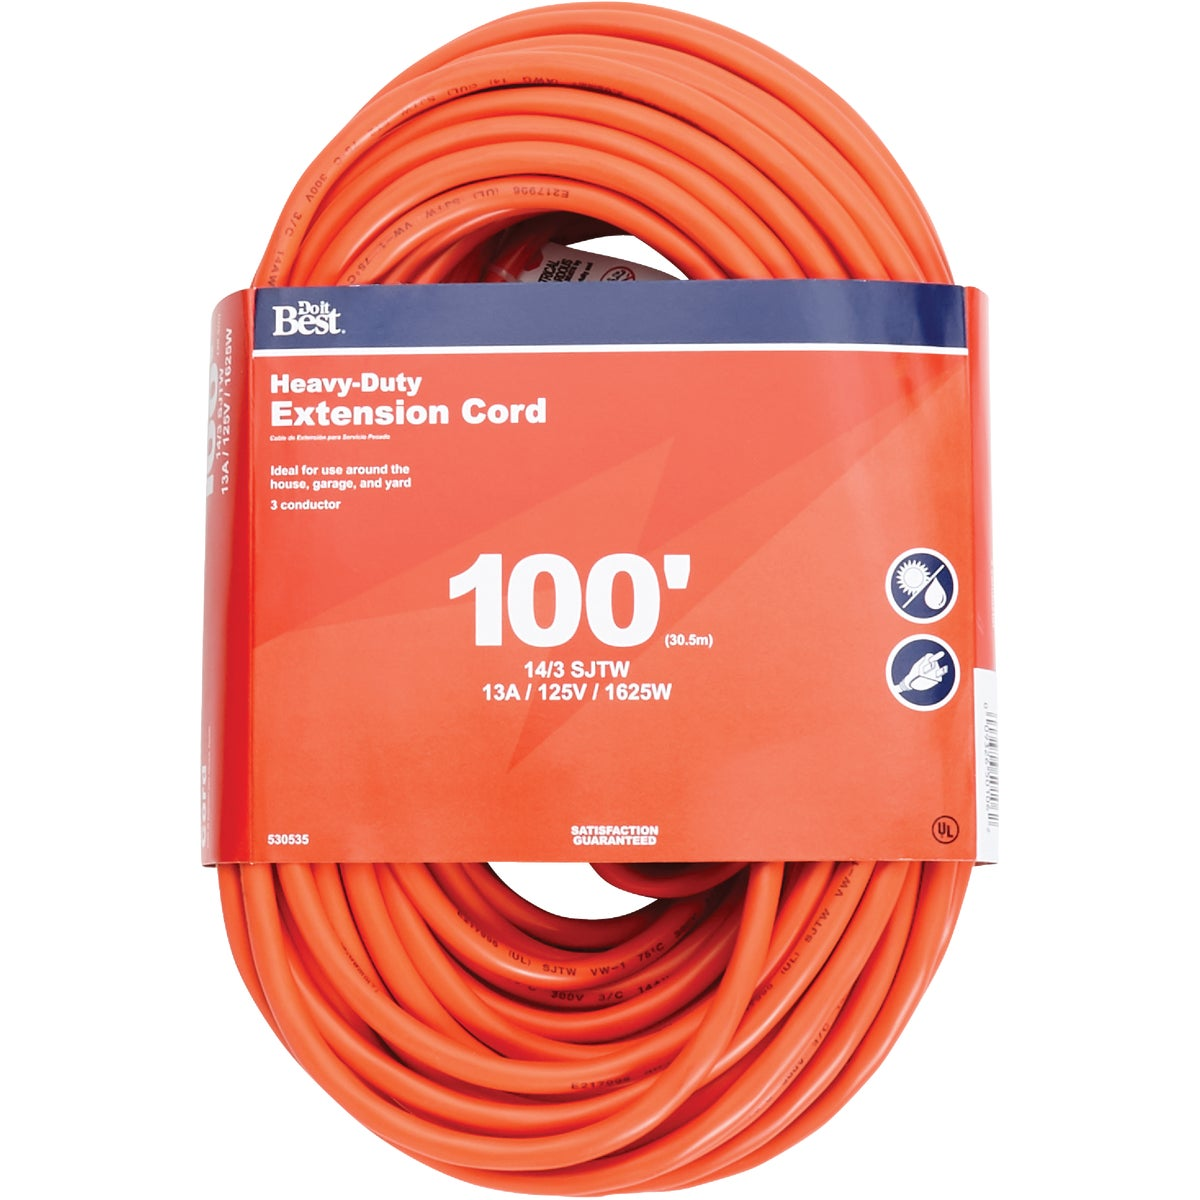 100' 14/3 OUTDOOR CORD